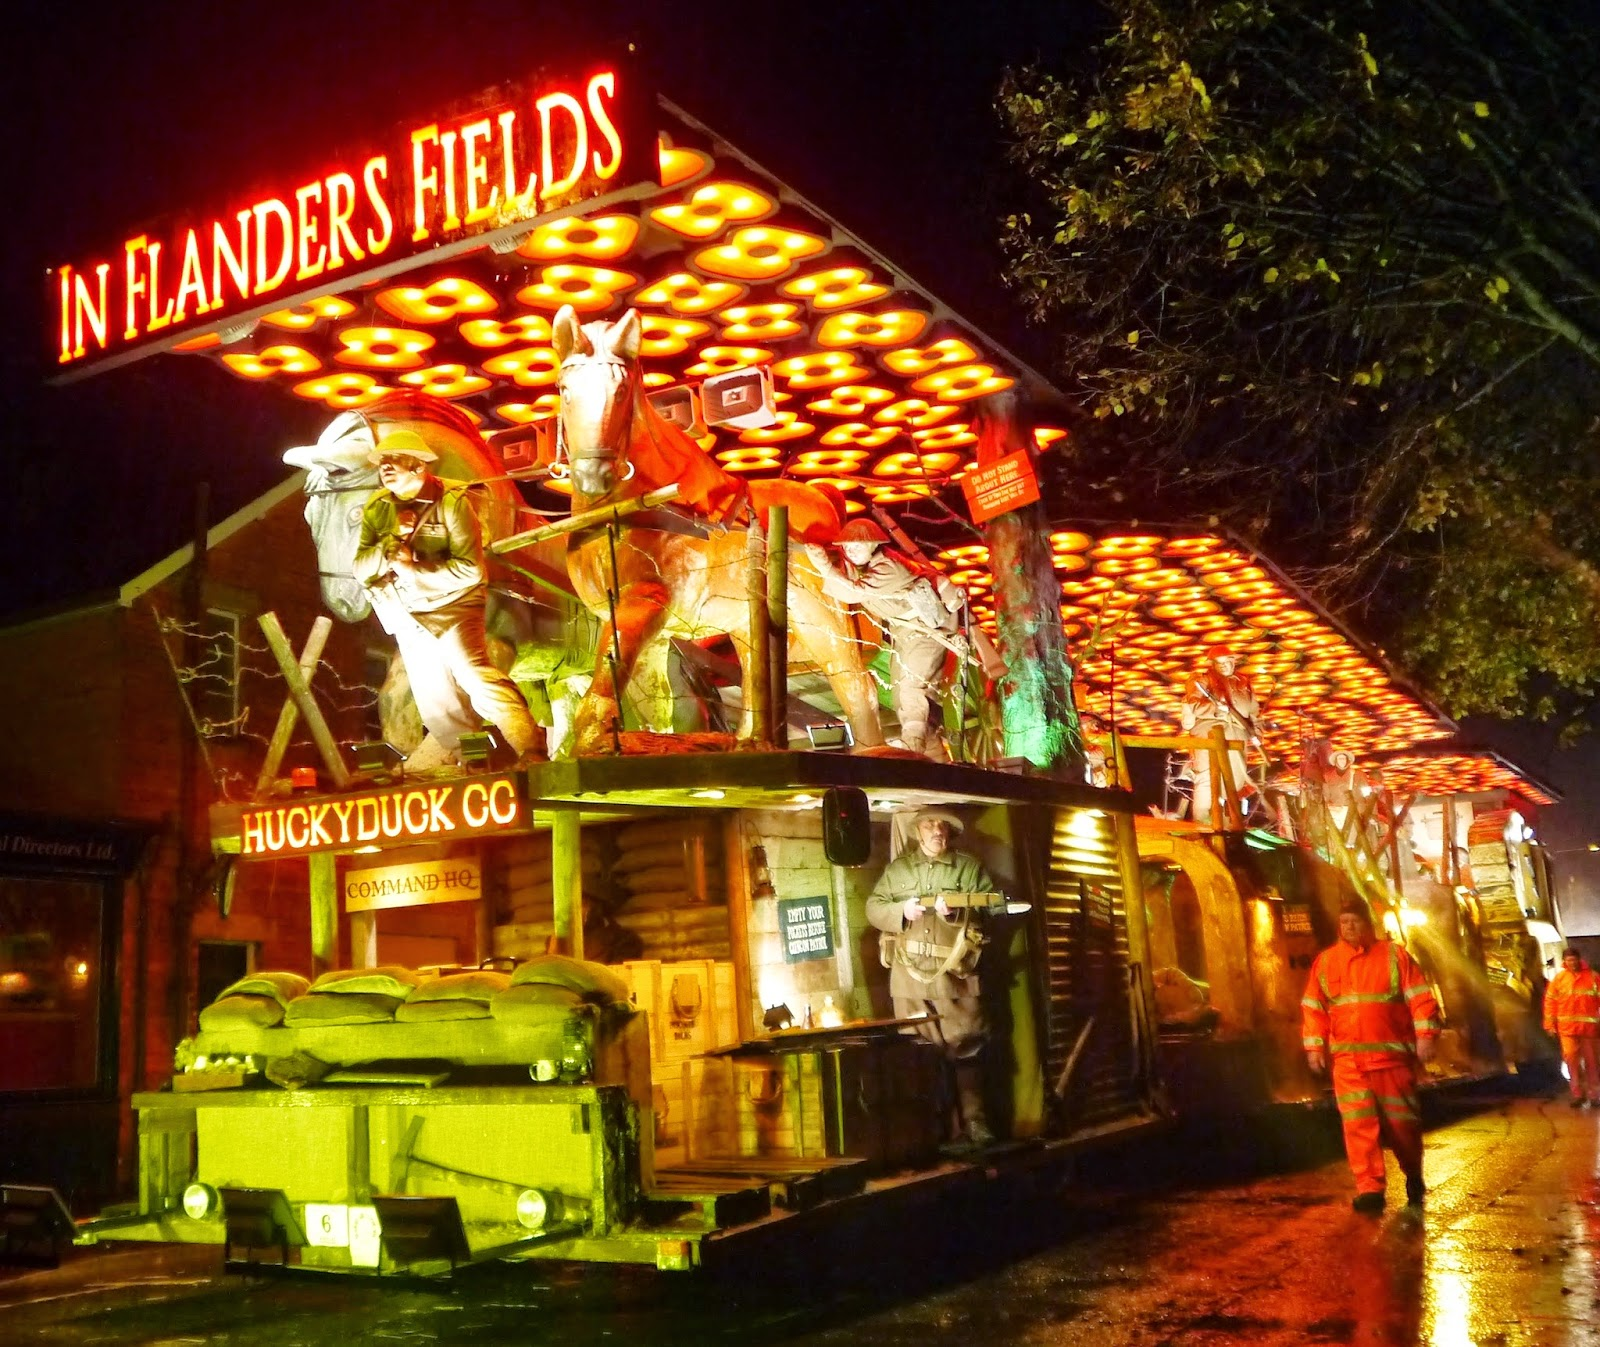 Somerset Carnival Season 2014 - Huckyduck Carnival Club with 'In Flanders Fields'